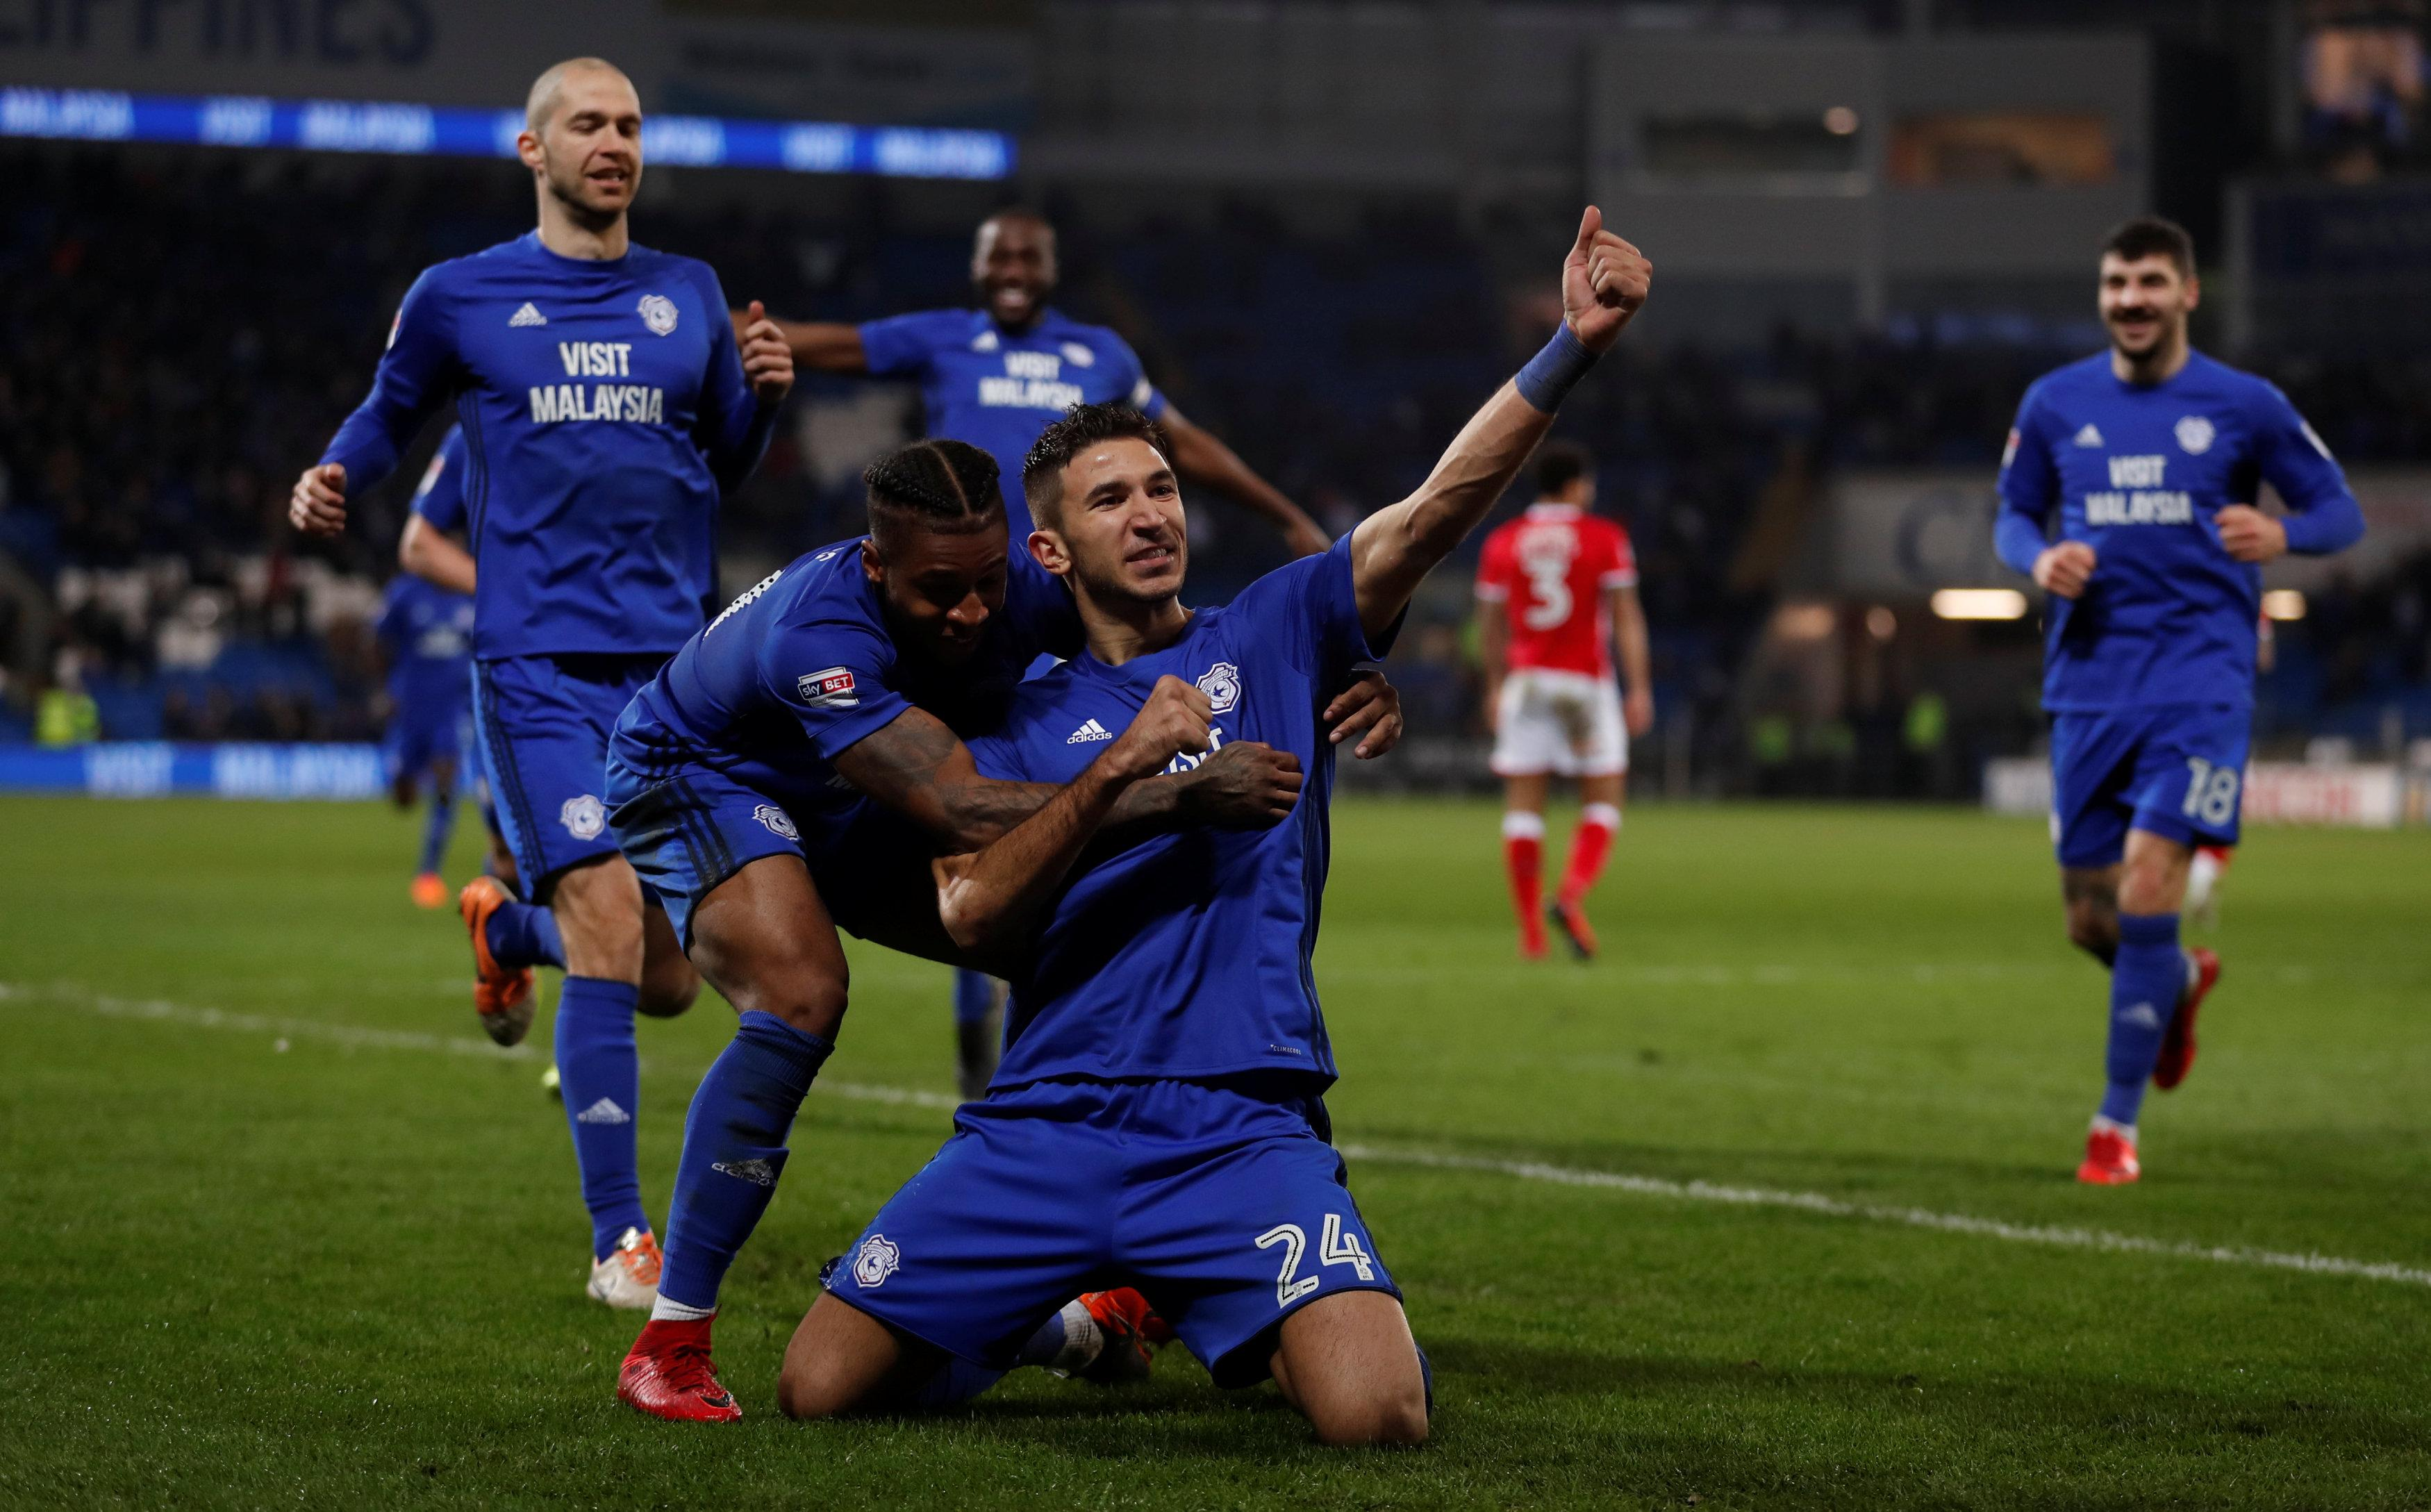 Marko Grujic played 12 games for Cardiff in the Championship and scored one goal